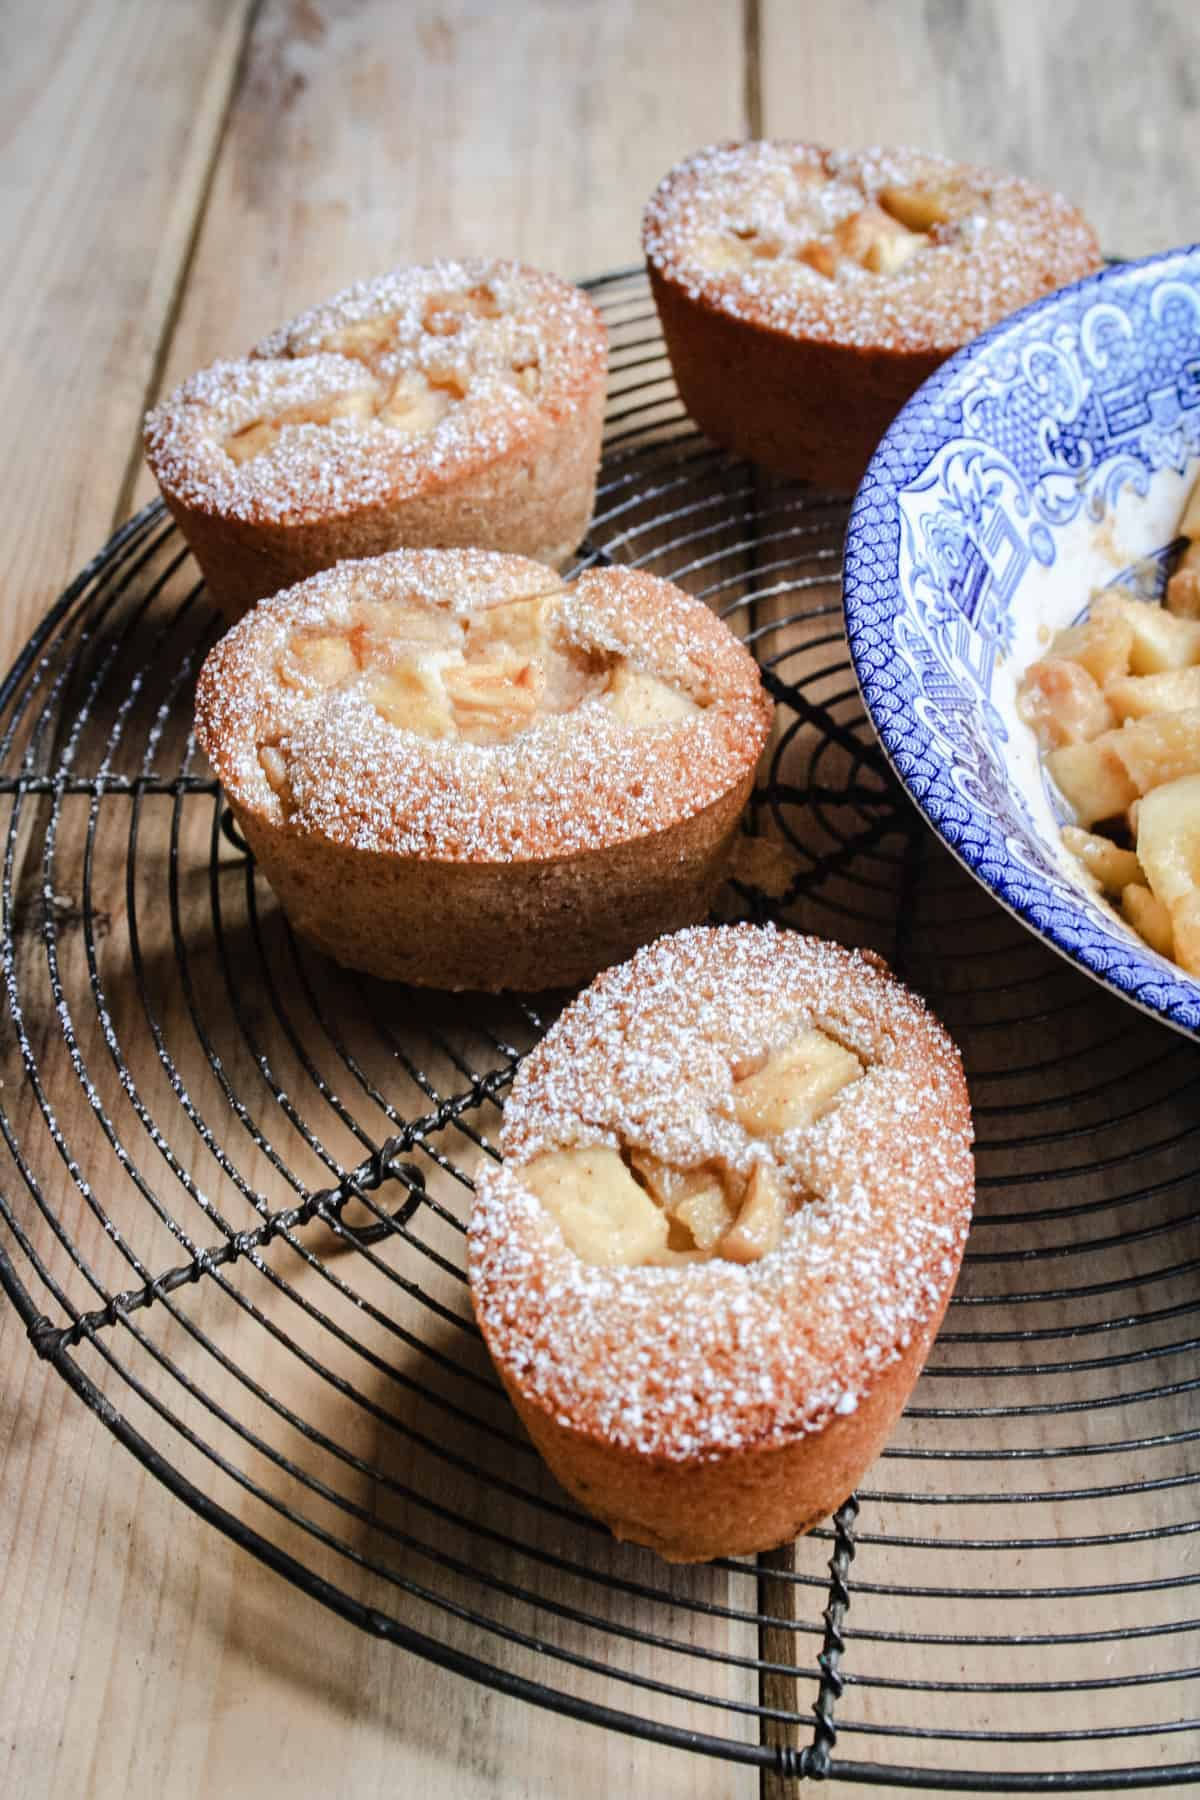 Some Apple Cinnamon Ricotta Friands sitting on a wire rack next to a bowl of caramelised apples